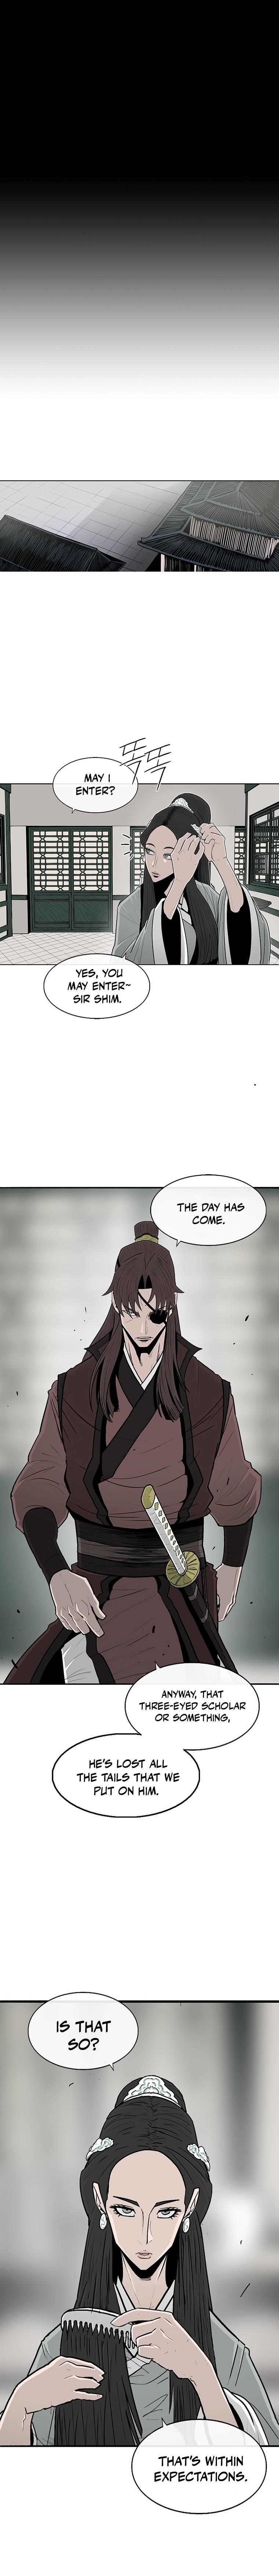 Legend Of The Northern Blade Chapter 99 page 8 - Mangakakalot